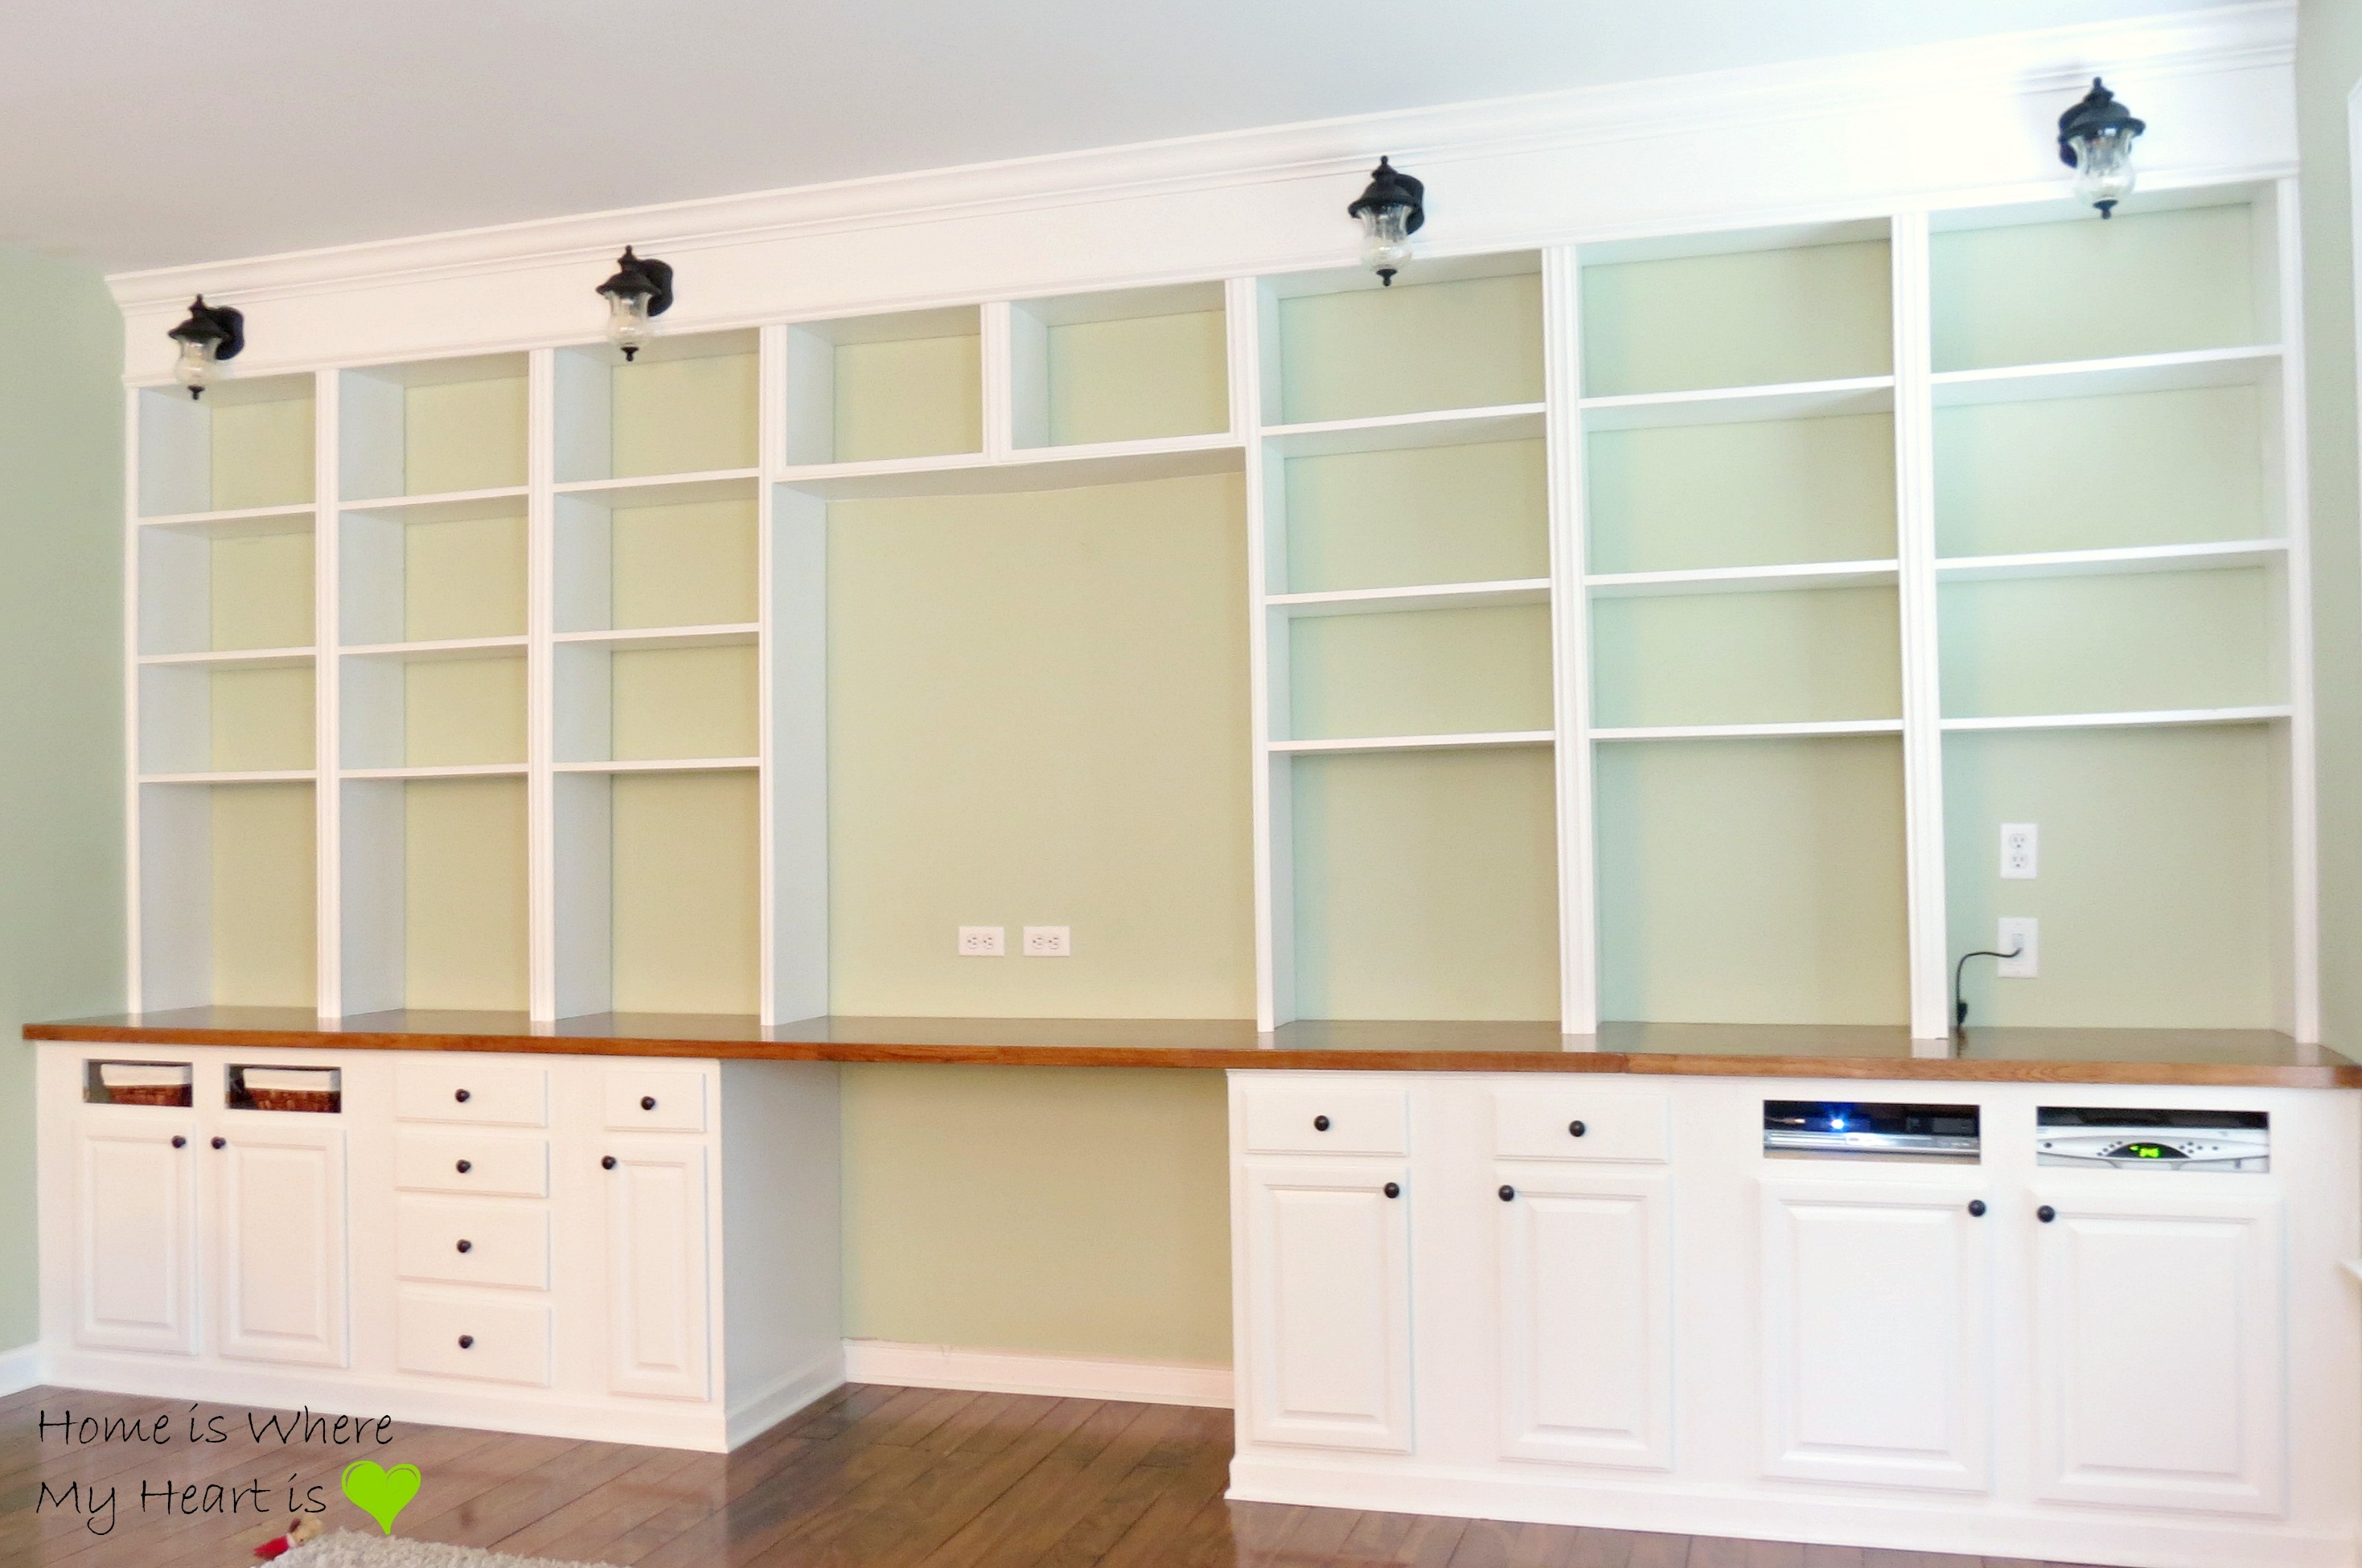 Remodelaholic Build A Wall To Wall Built In Desk And Bookcase Regarding Built In Bookcase Kit (#15 of 15)